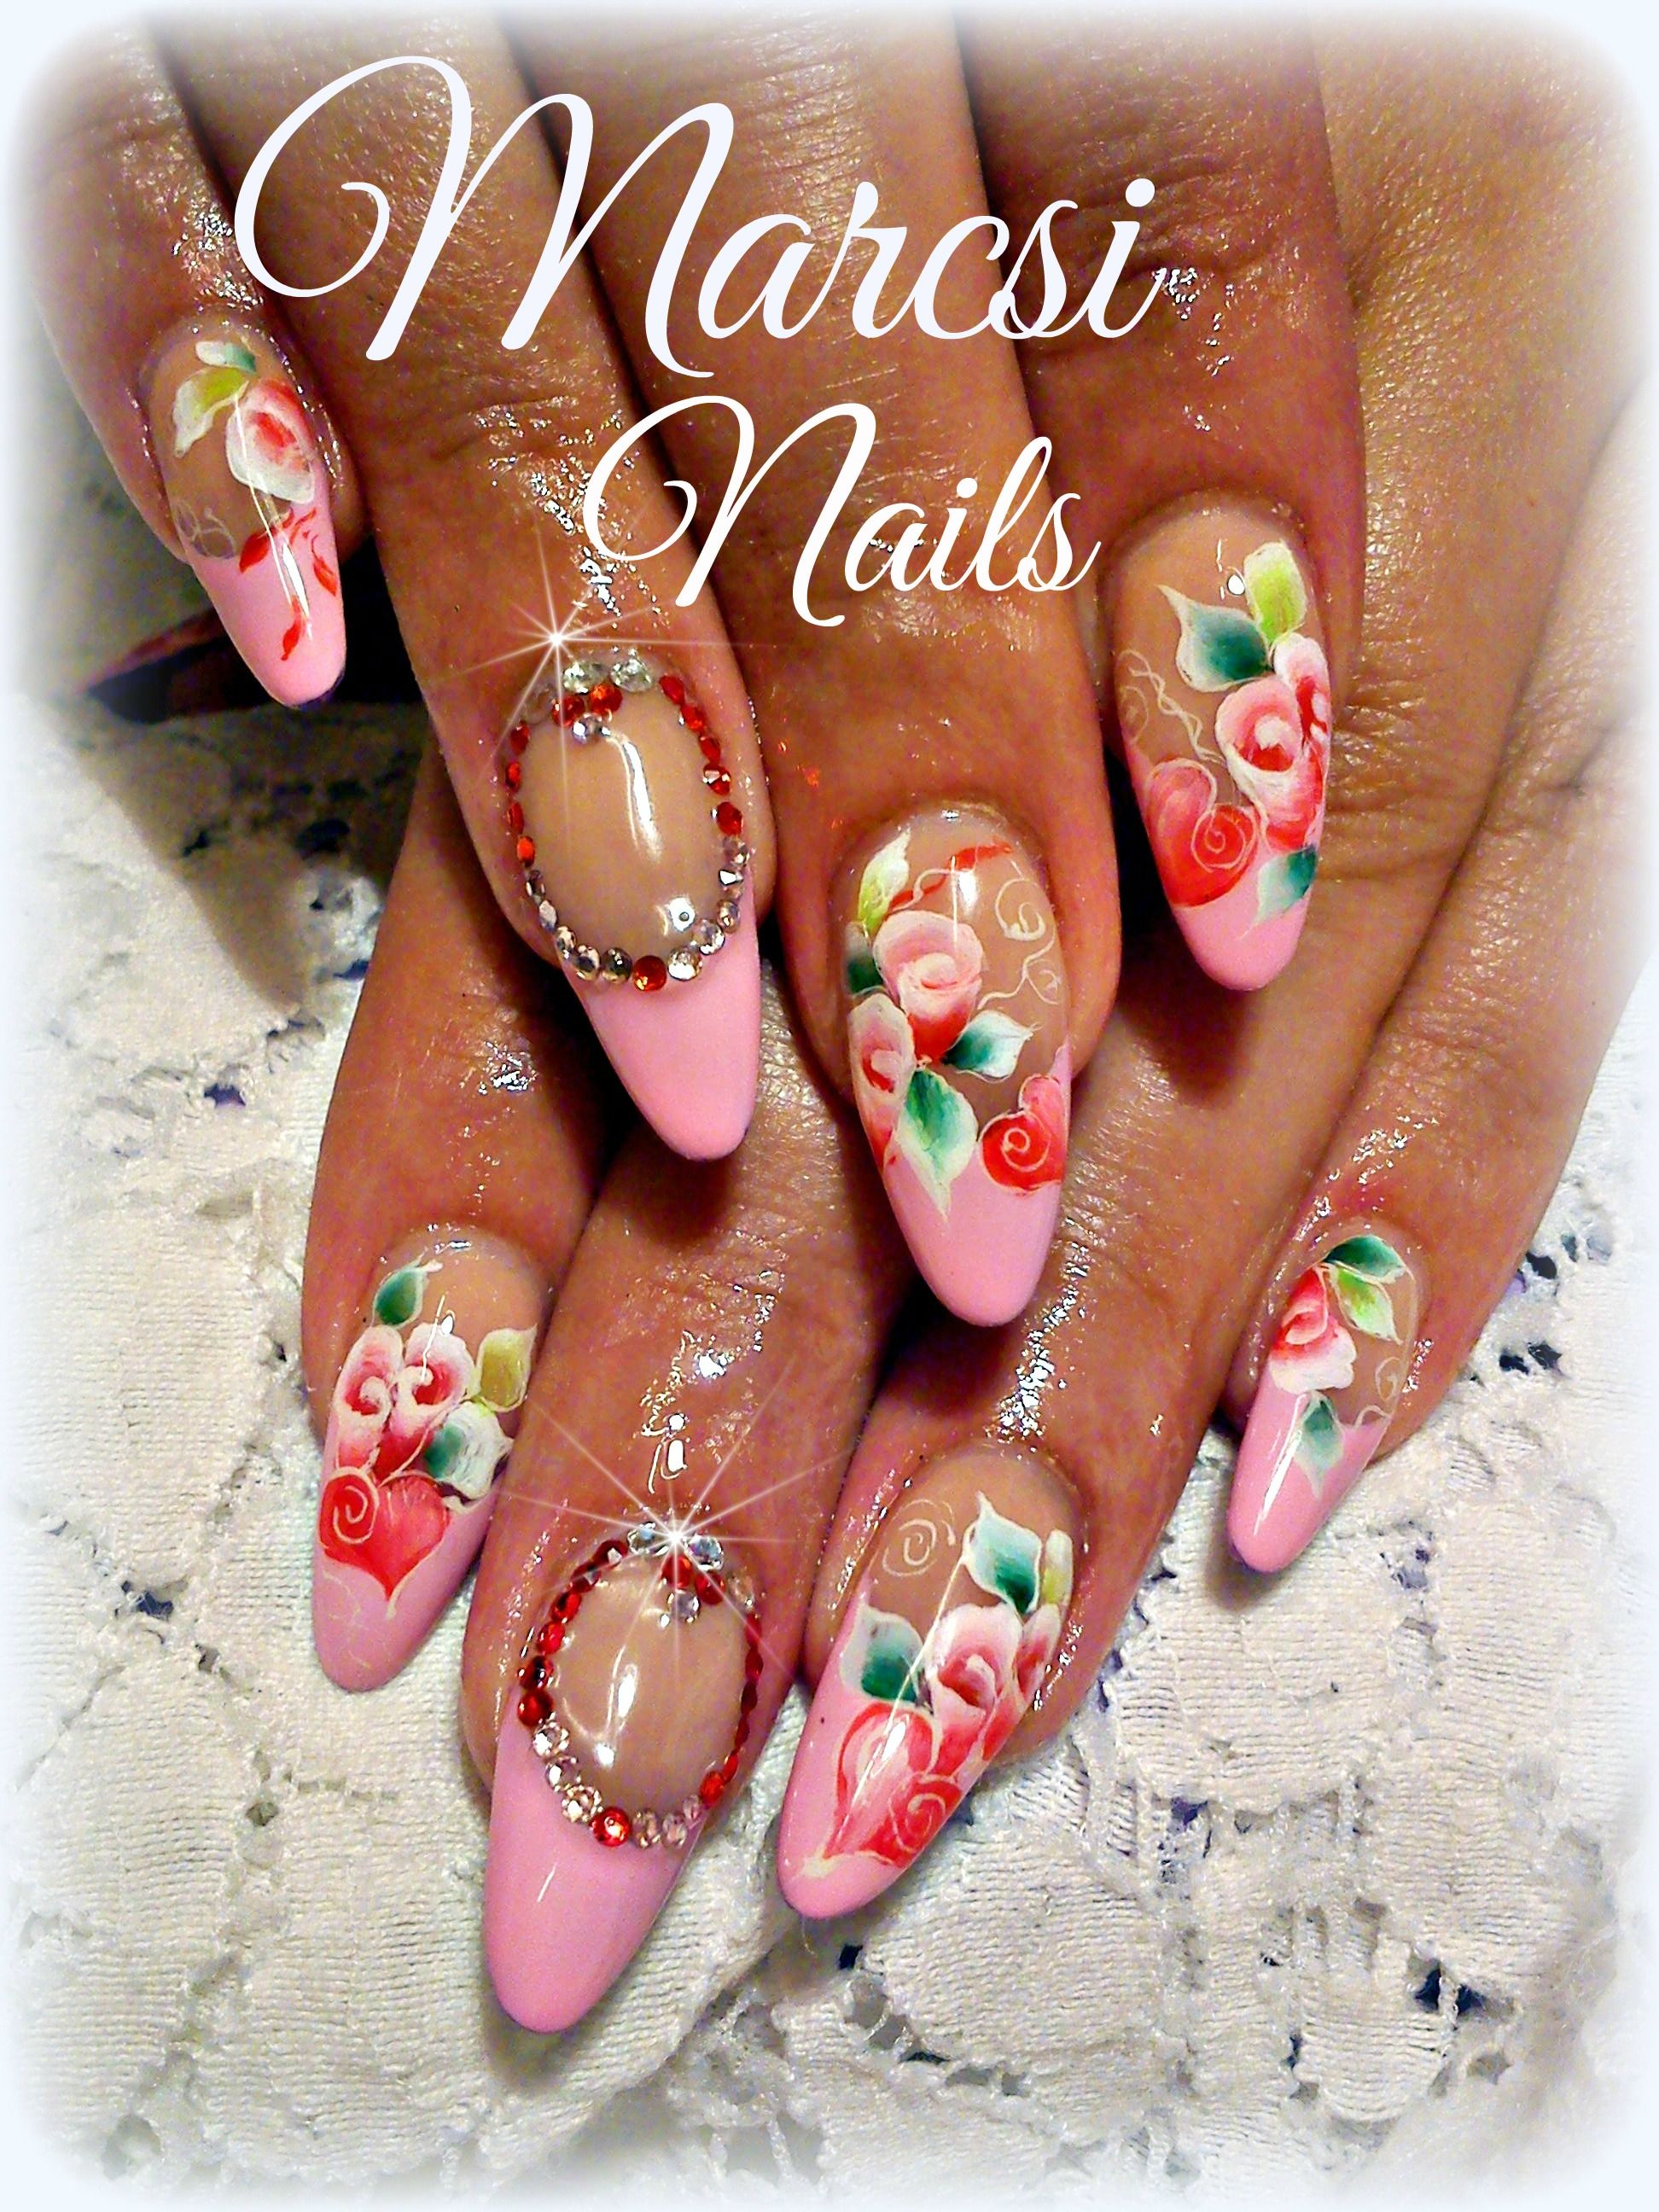 Pink french nails/ Flower nail art | nail designs | Pinterest ...